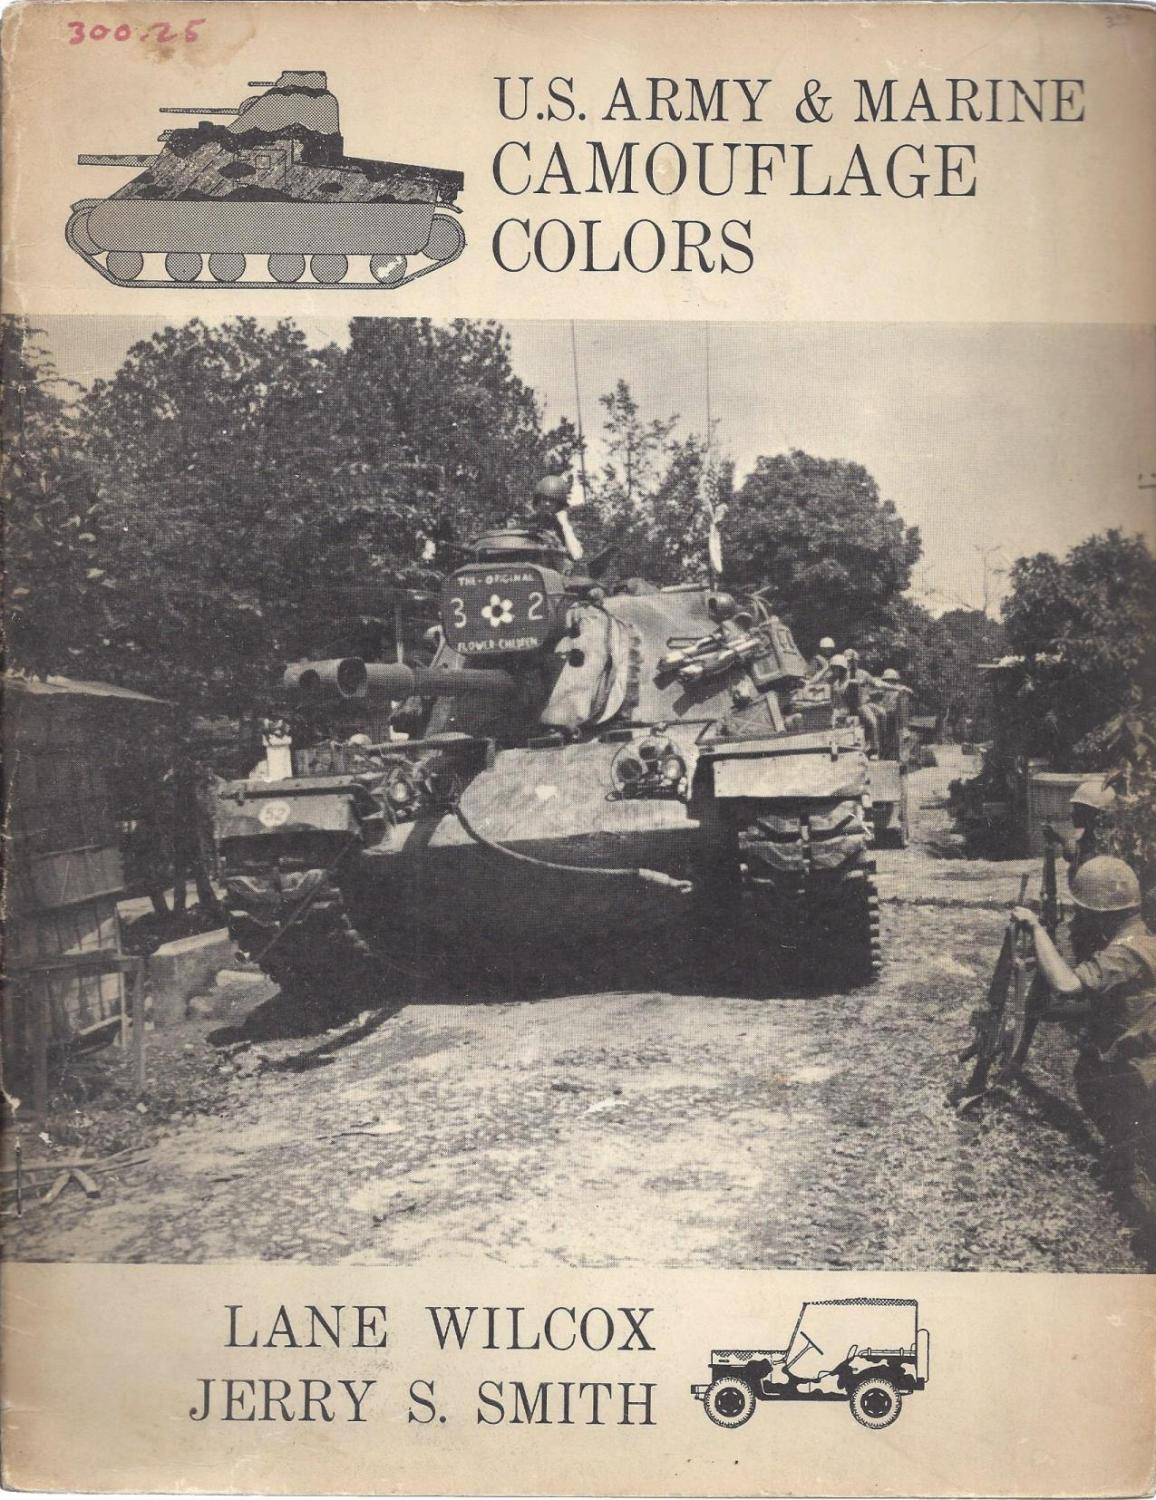 U.S. Army & Marine Camouflage Colors, Wilcox, Lane; Smith, Jerry S.